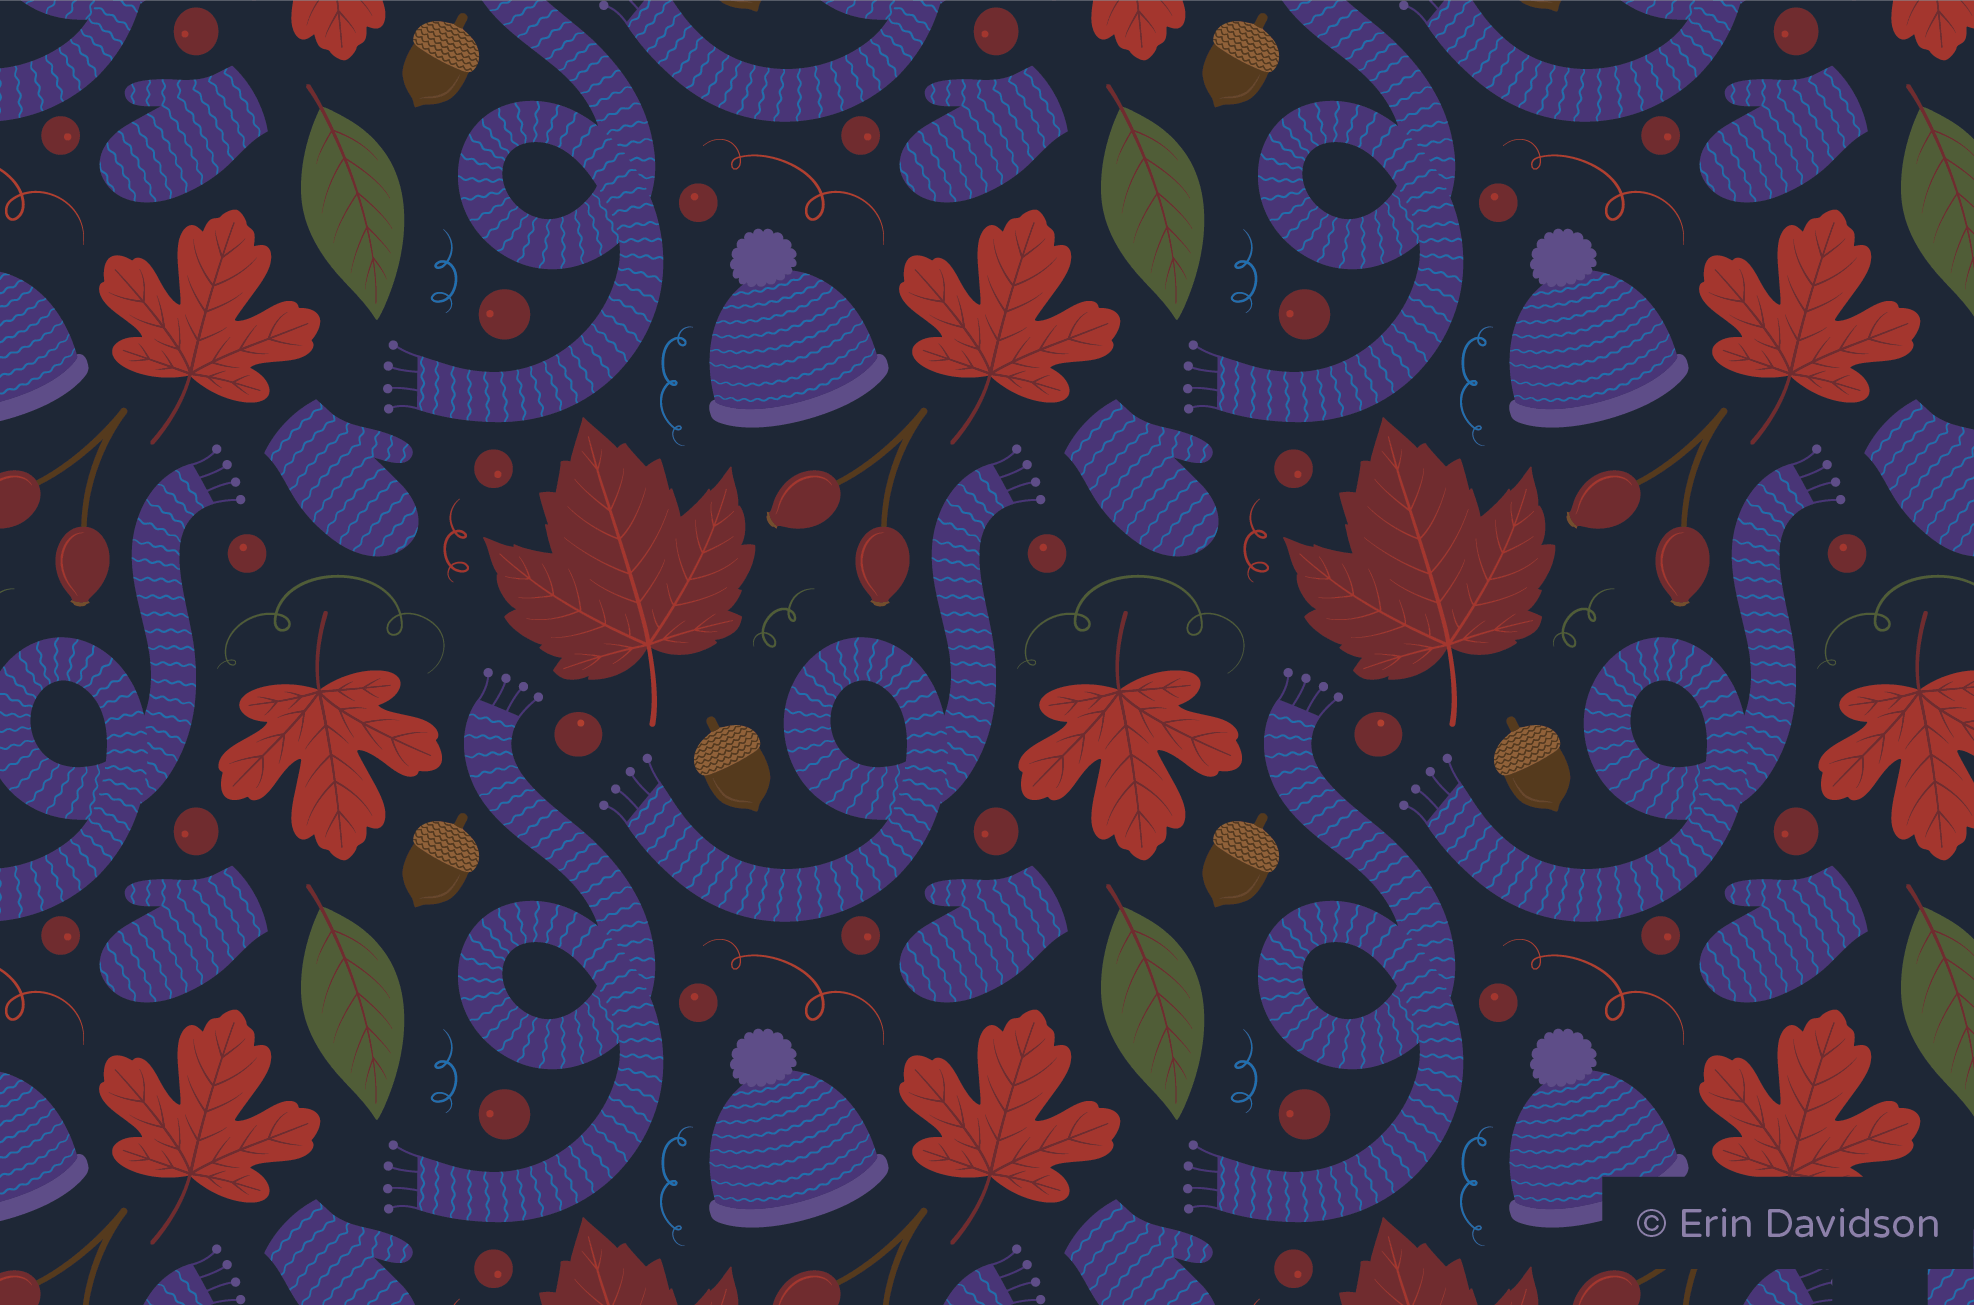 Hero print featuring purple scarves, mitts and hat, red and orange maple leaves, green plant leaves, rosehips, acorns, red berries, and curly vine motifs.